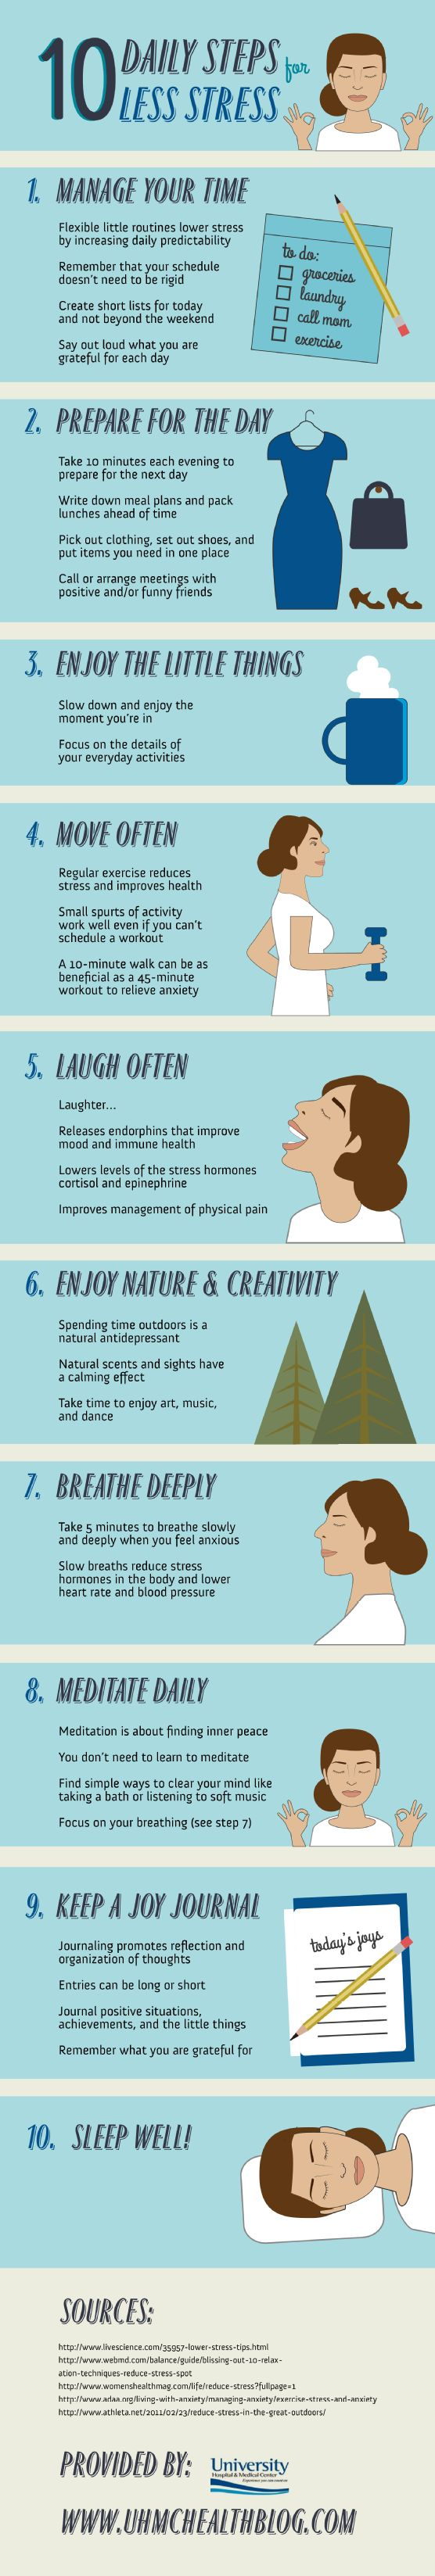 10 Daily Steps for Less Stress #infographic